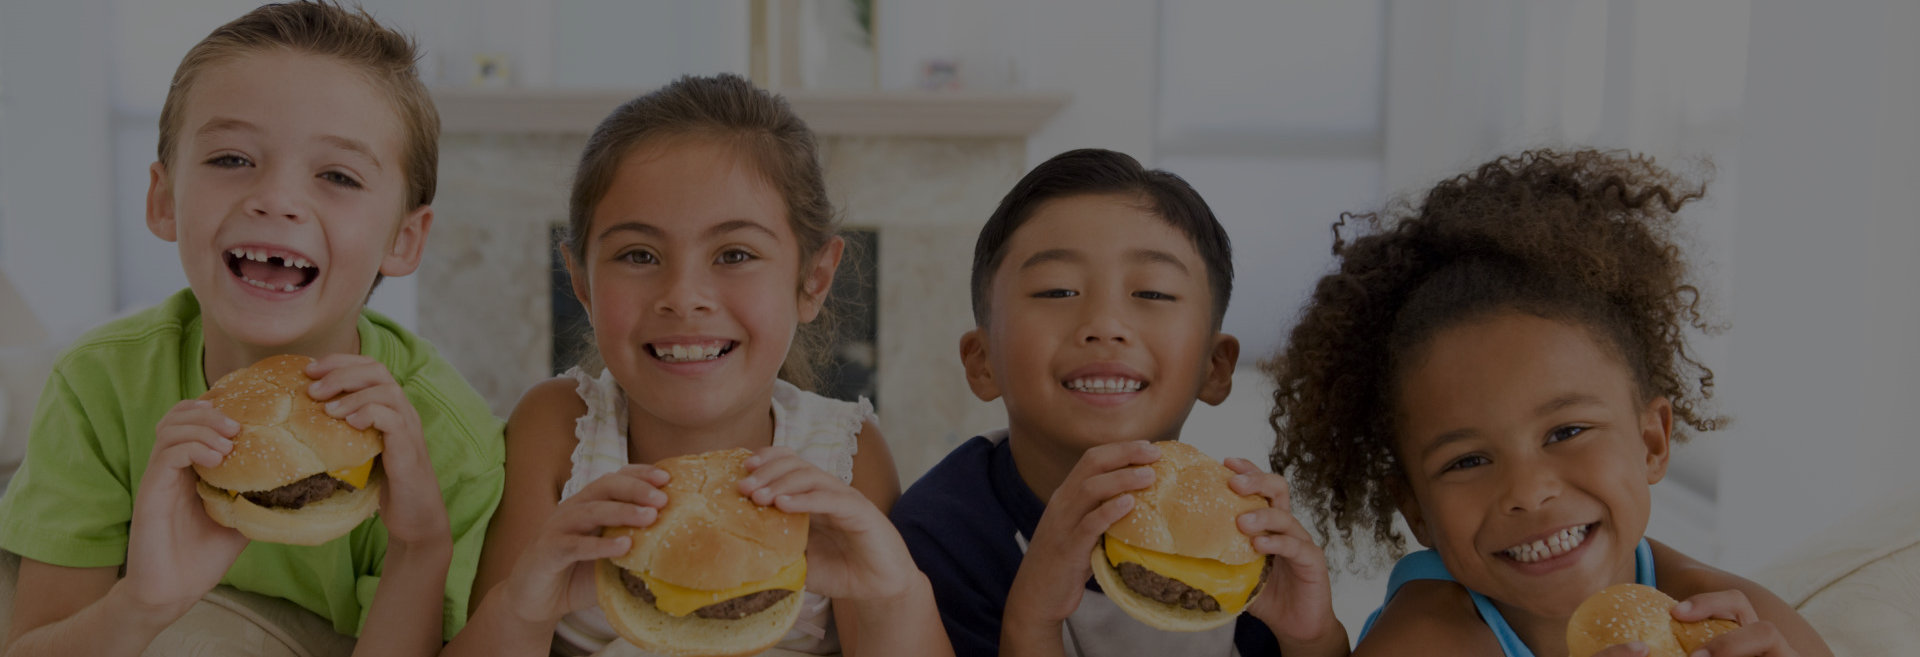 children eating hamburgers